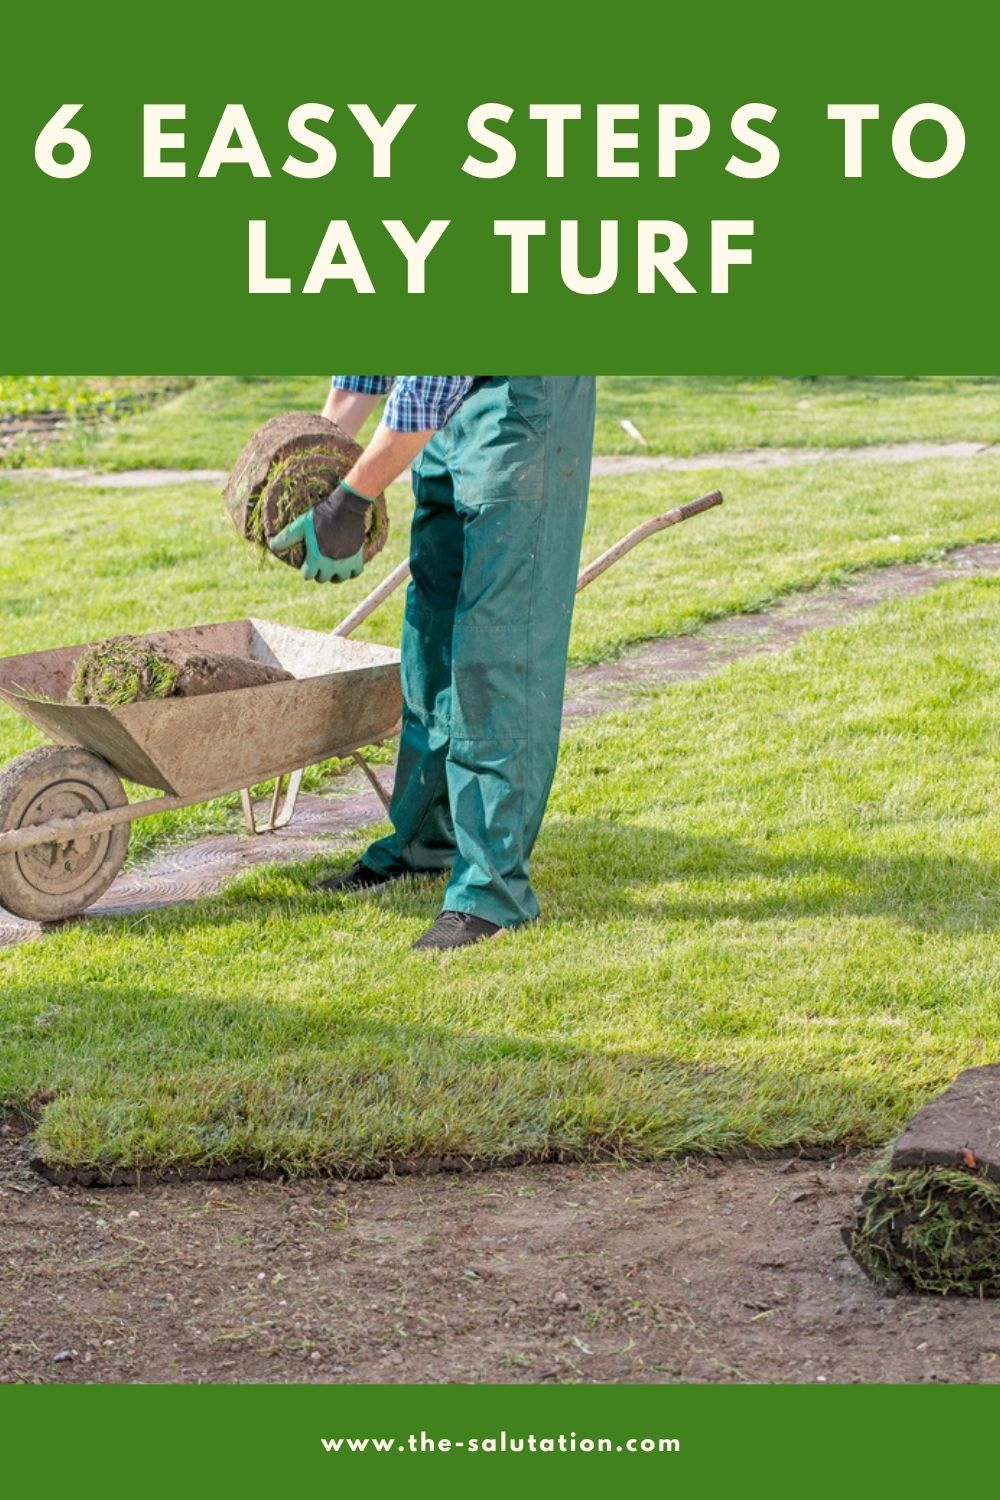 6 Easy Steps to Lay Turf 2